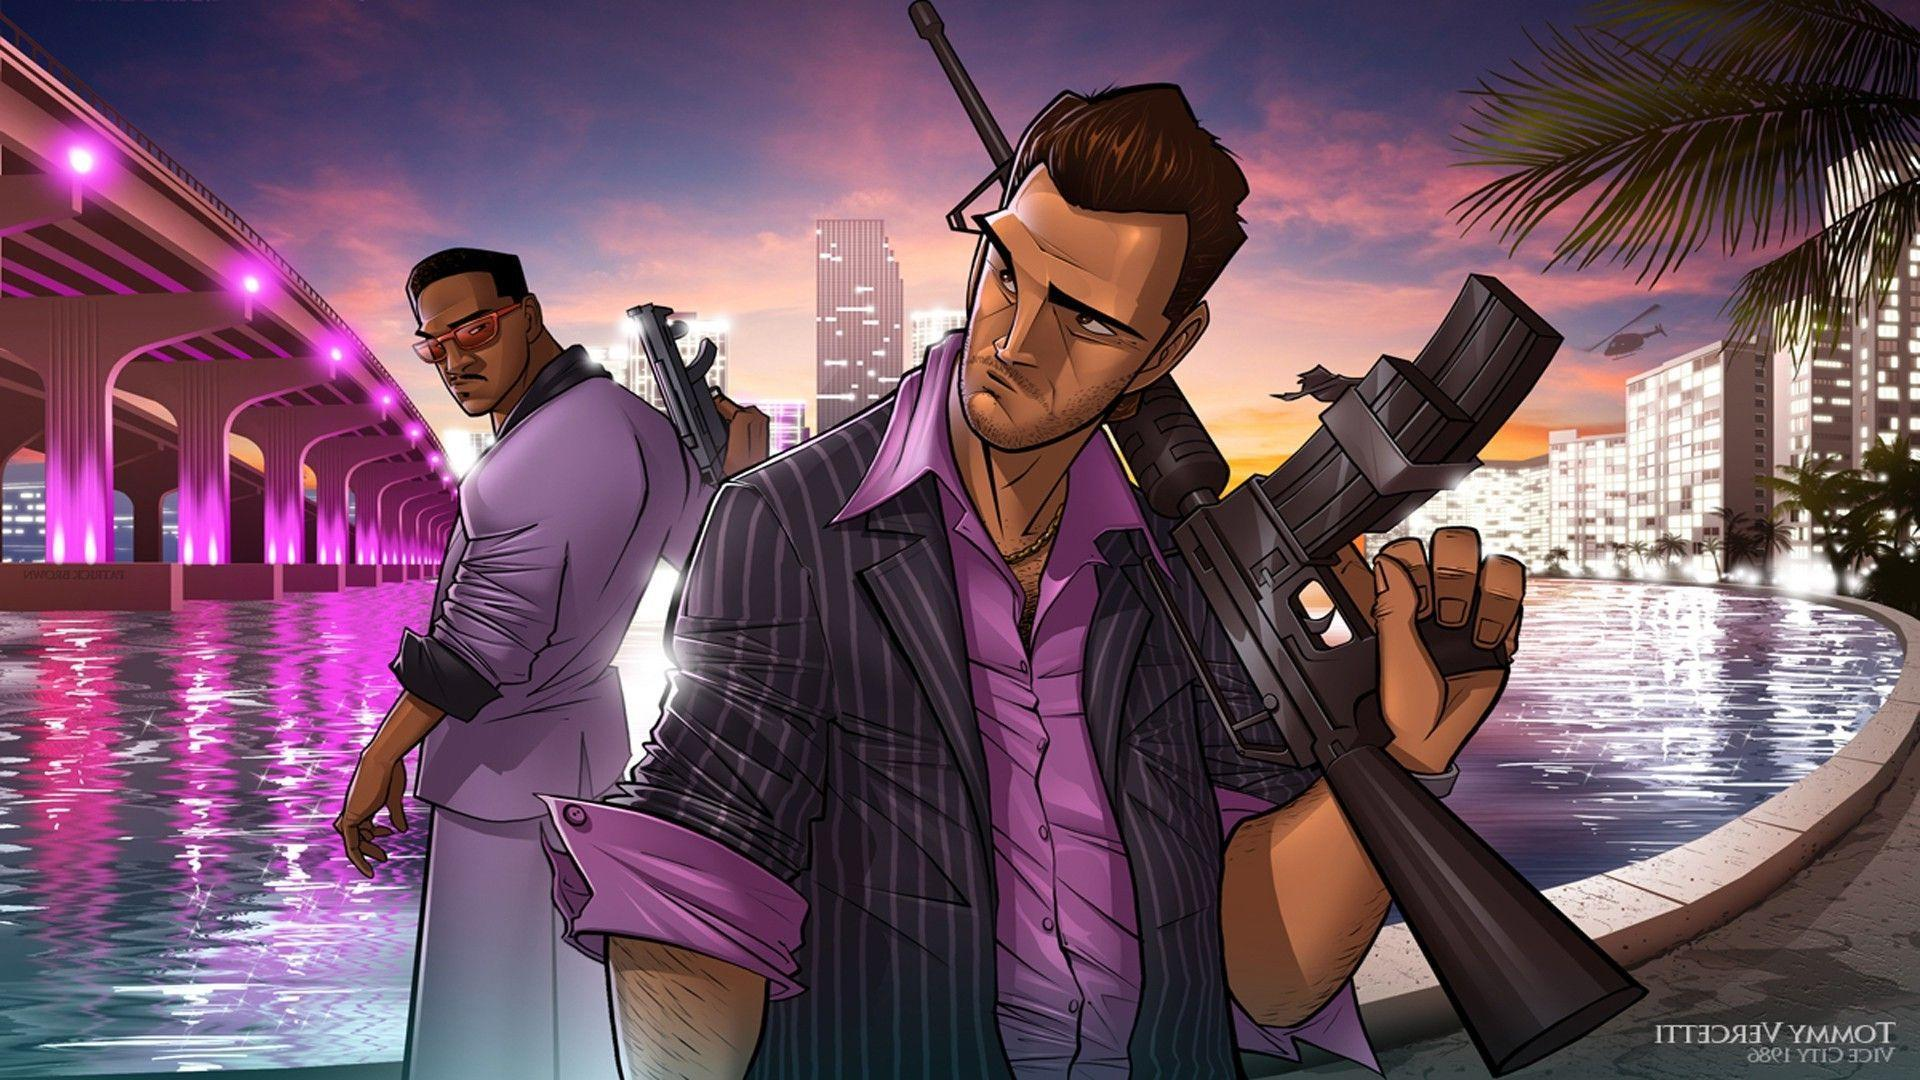 Grand Theft Auto Vice City, PC Gaming, Tommy Vercetti, Lance Vance